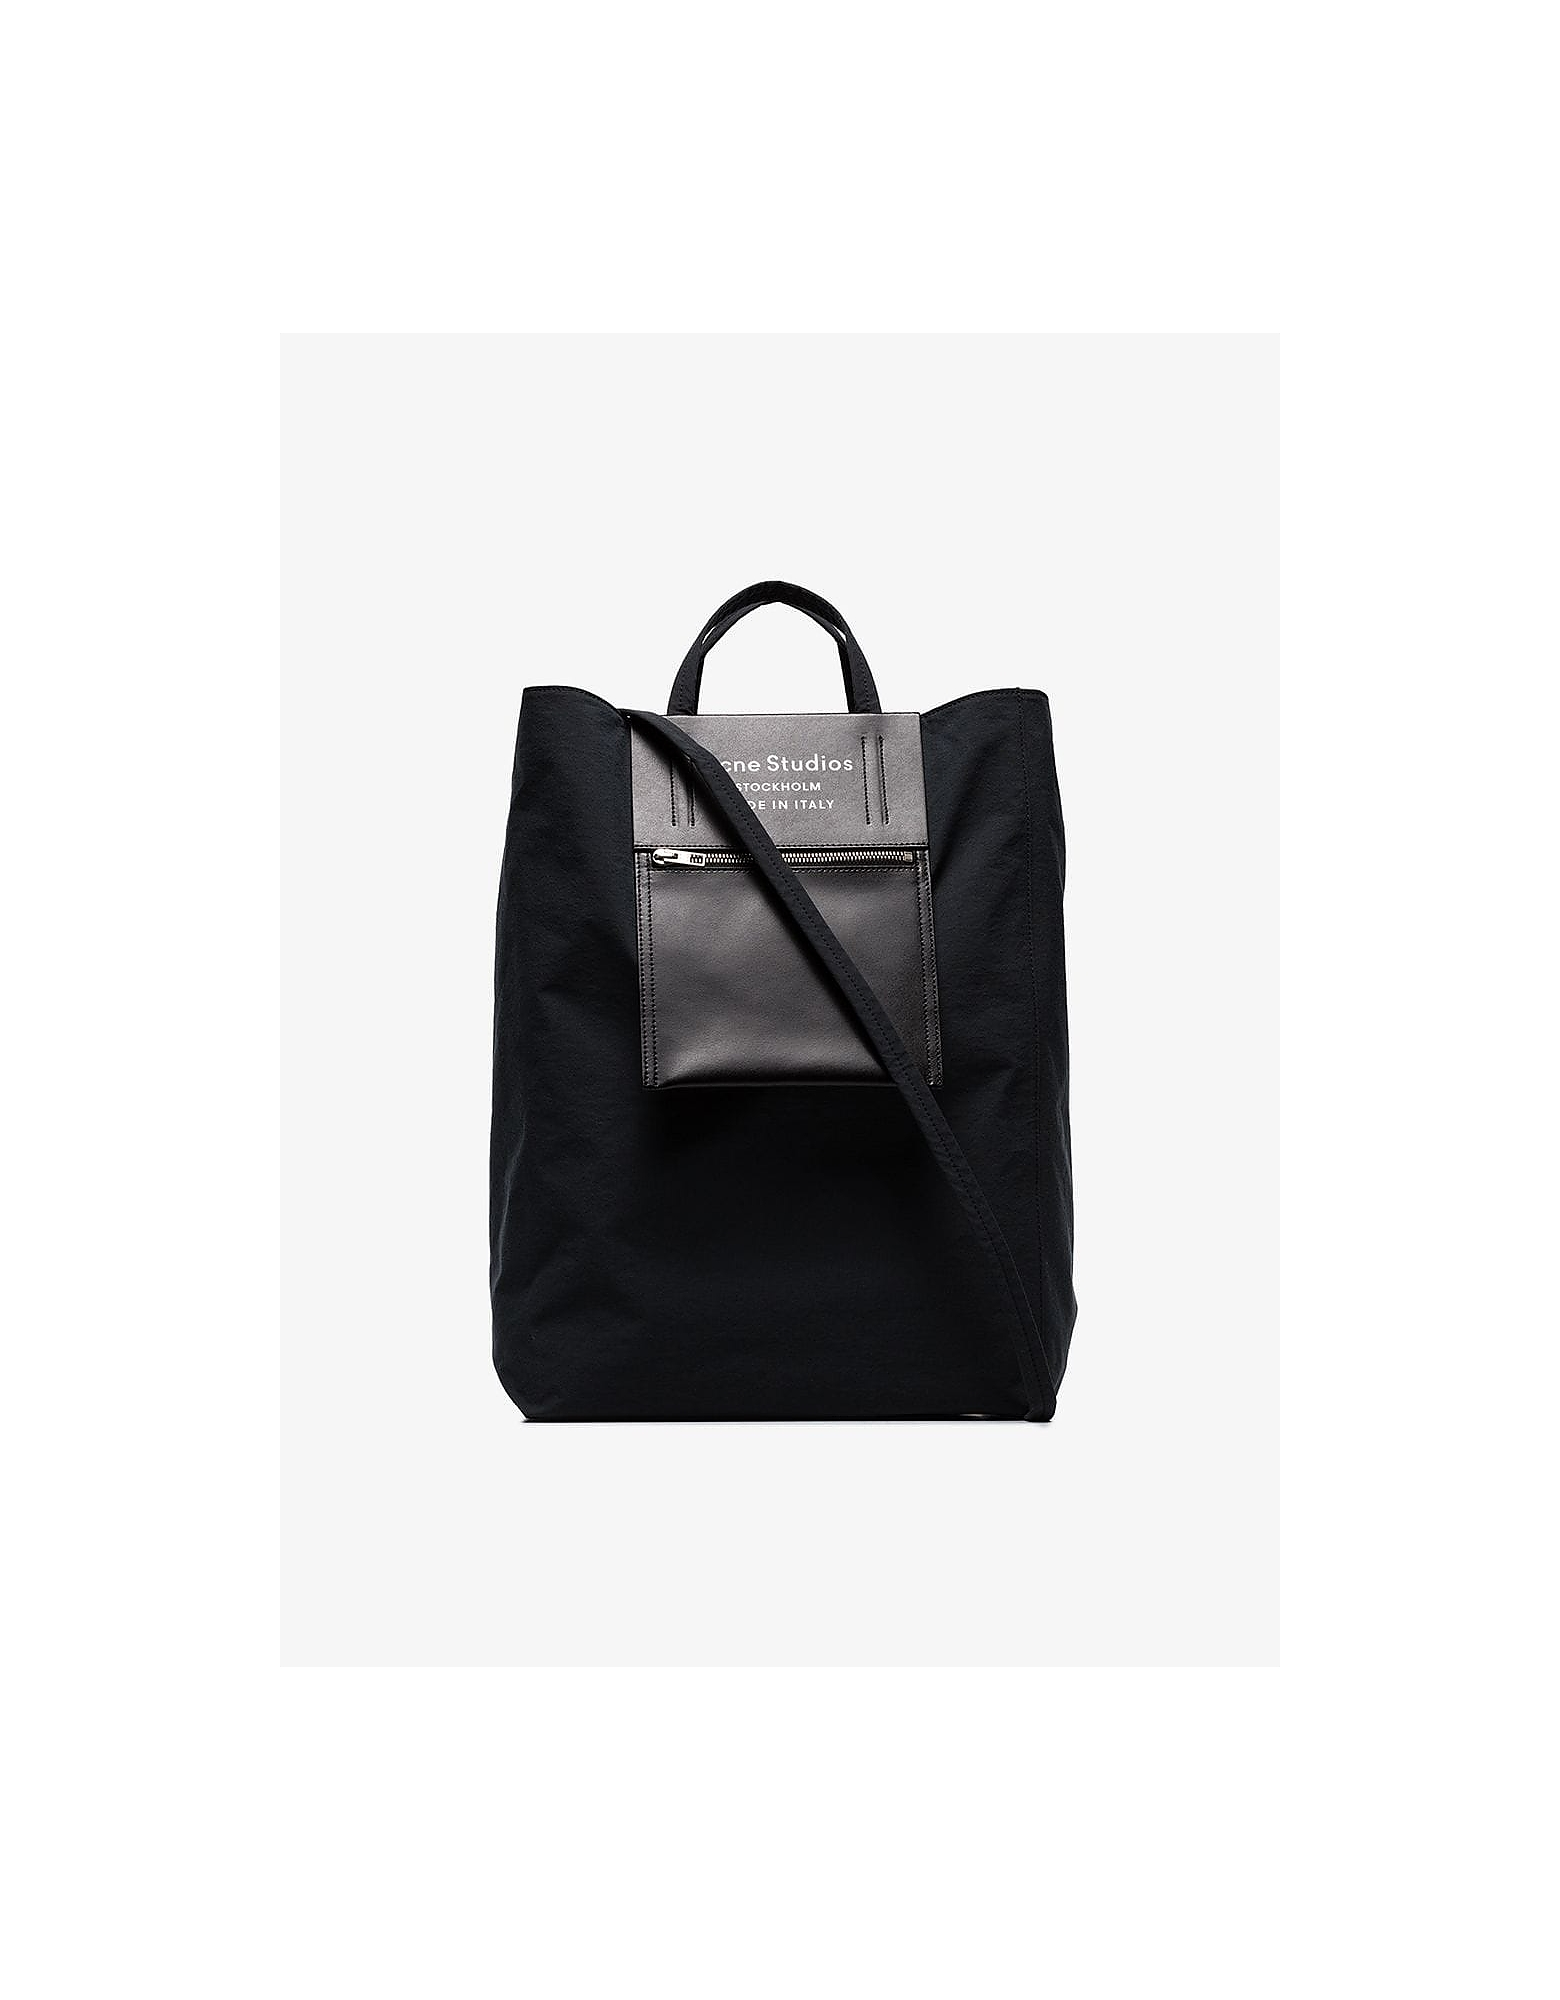 Acne Studios Designer Handbags, Black Baker leather and canvas tote bag